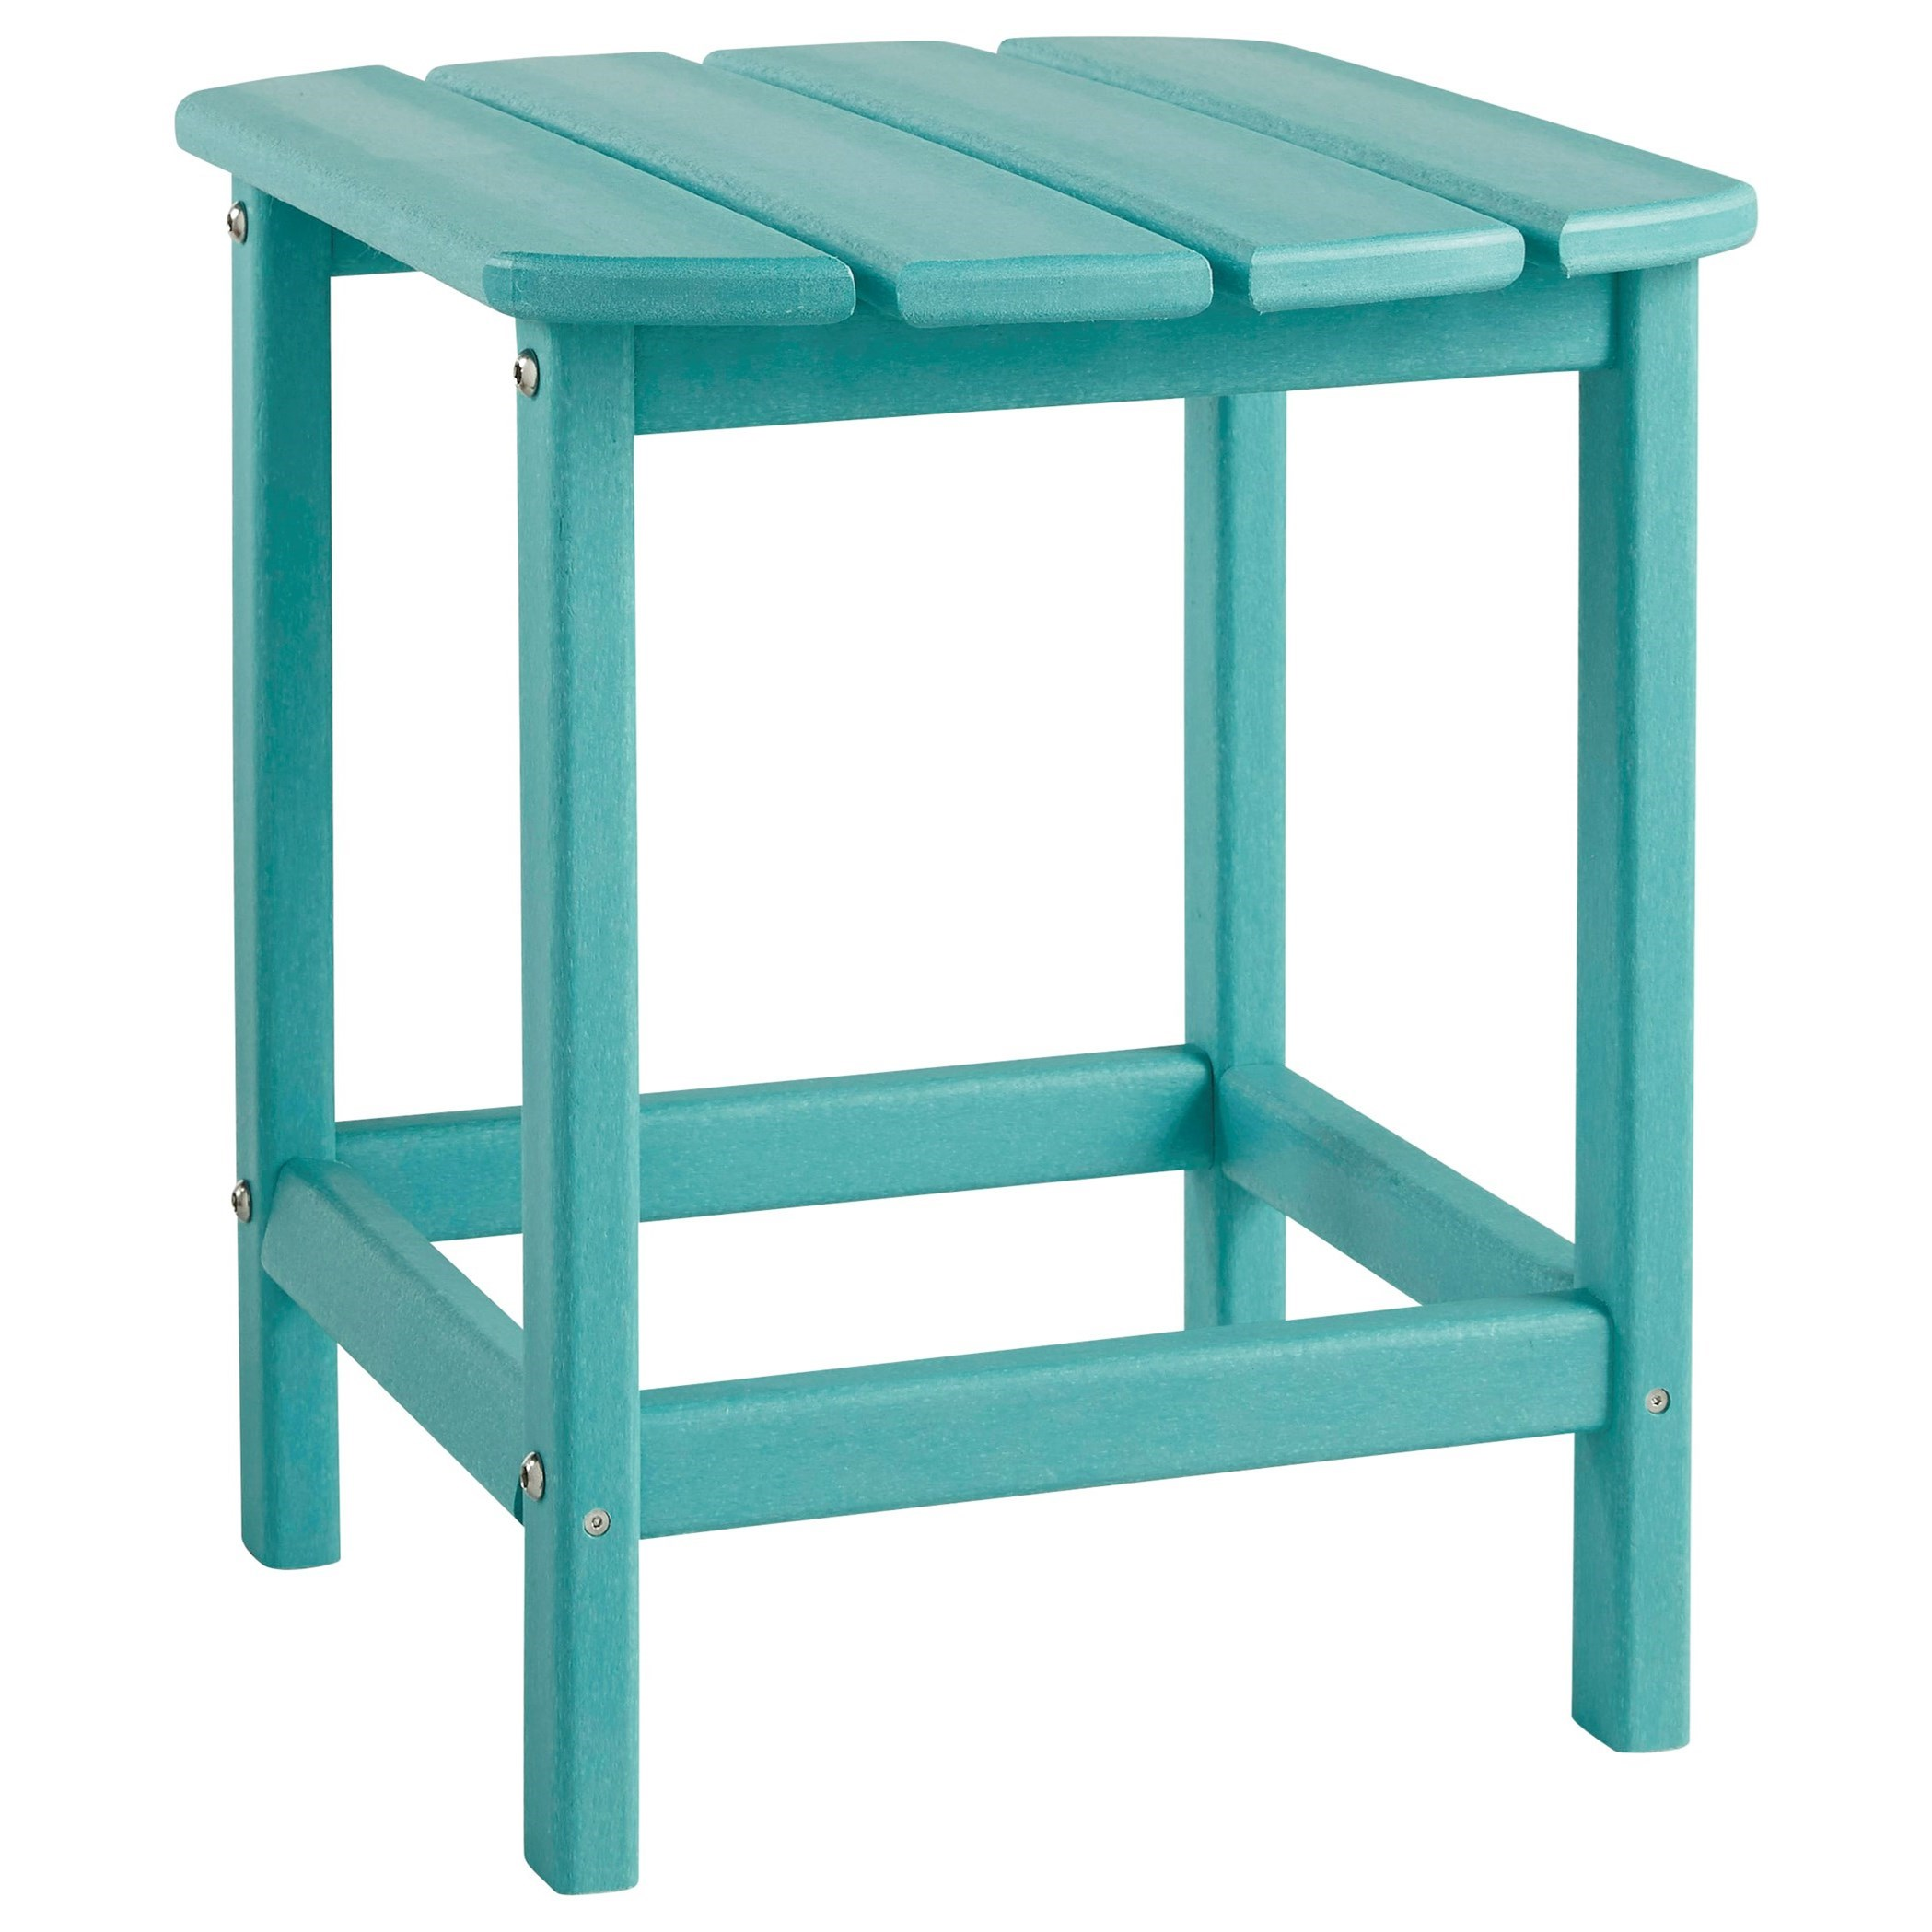 Sundown Treasure Rectangular End Table by Signature Design by Ashley at Northeast Factory Direct